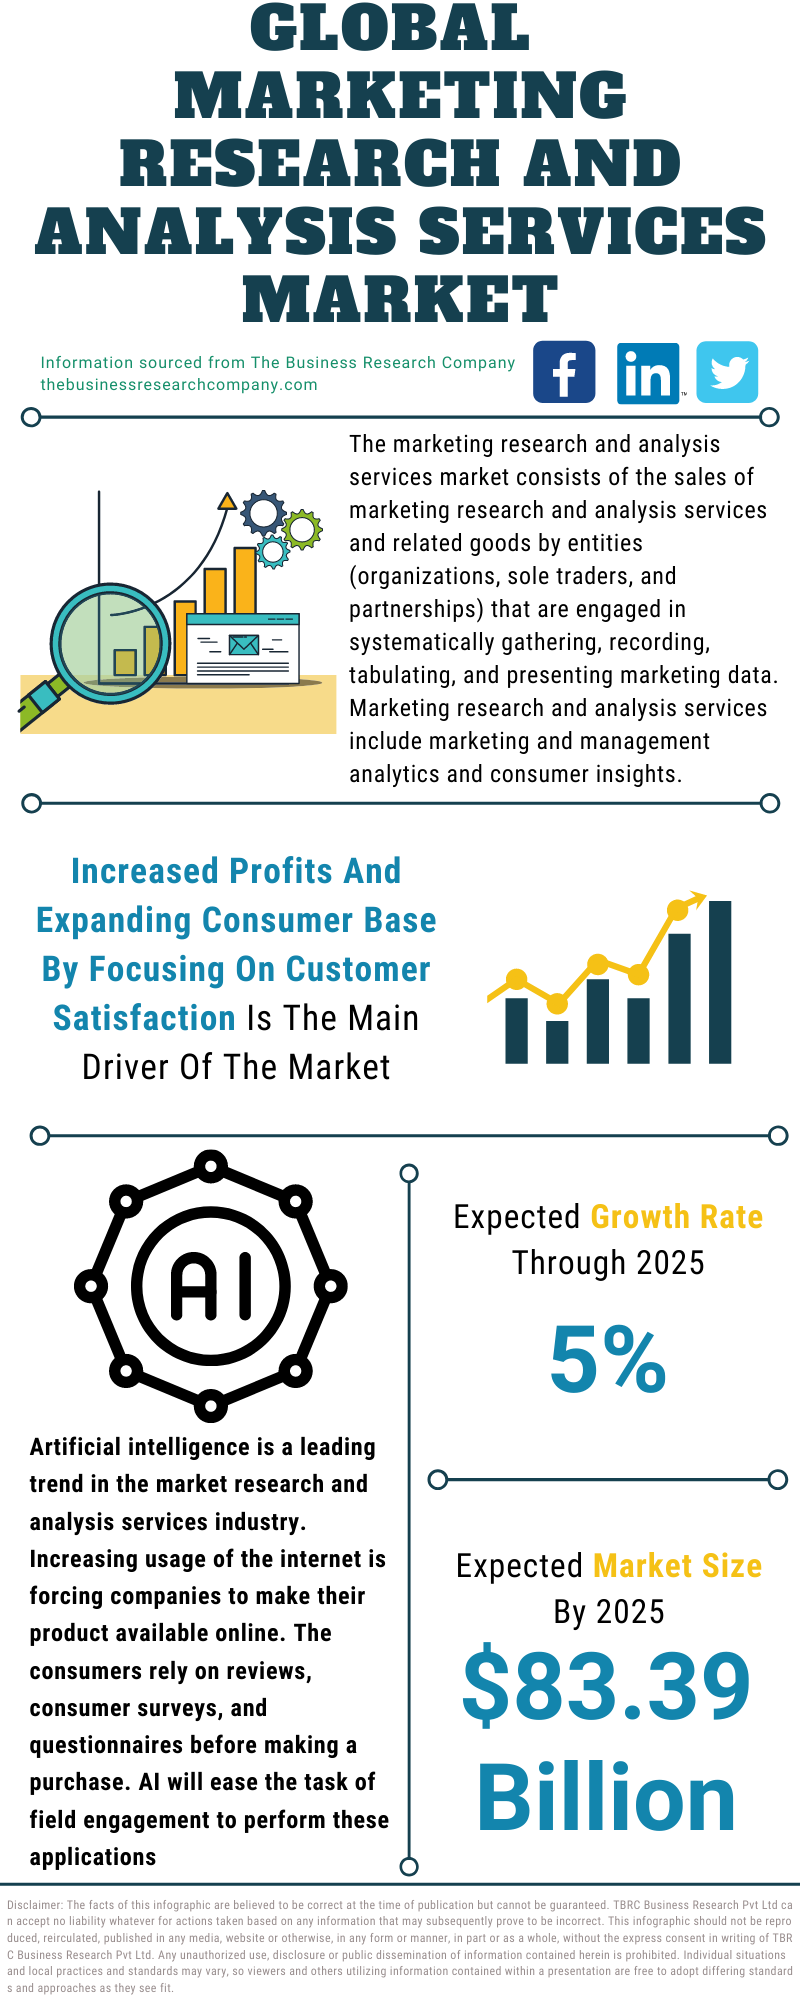 Global Marketing Research And Analysis Services Market Data And Industry Growth Analysis